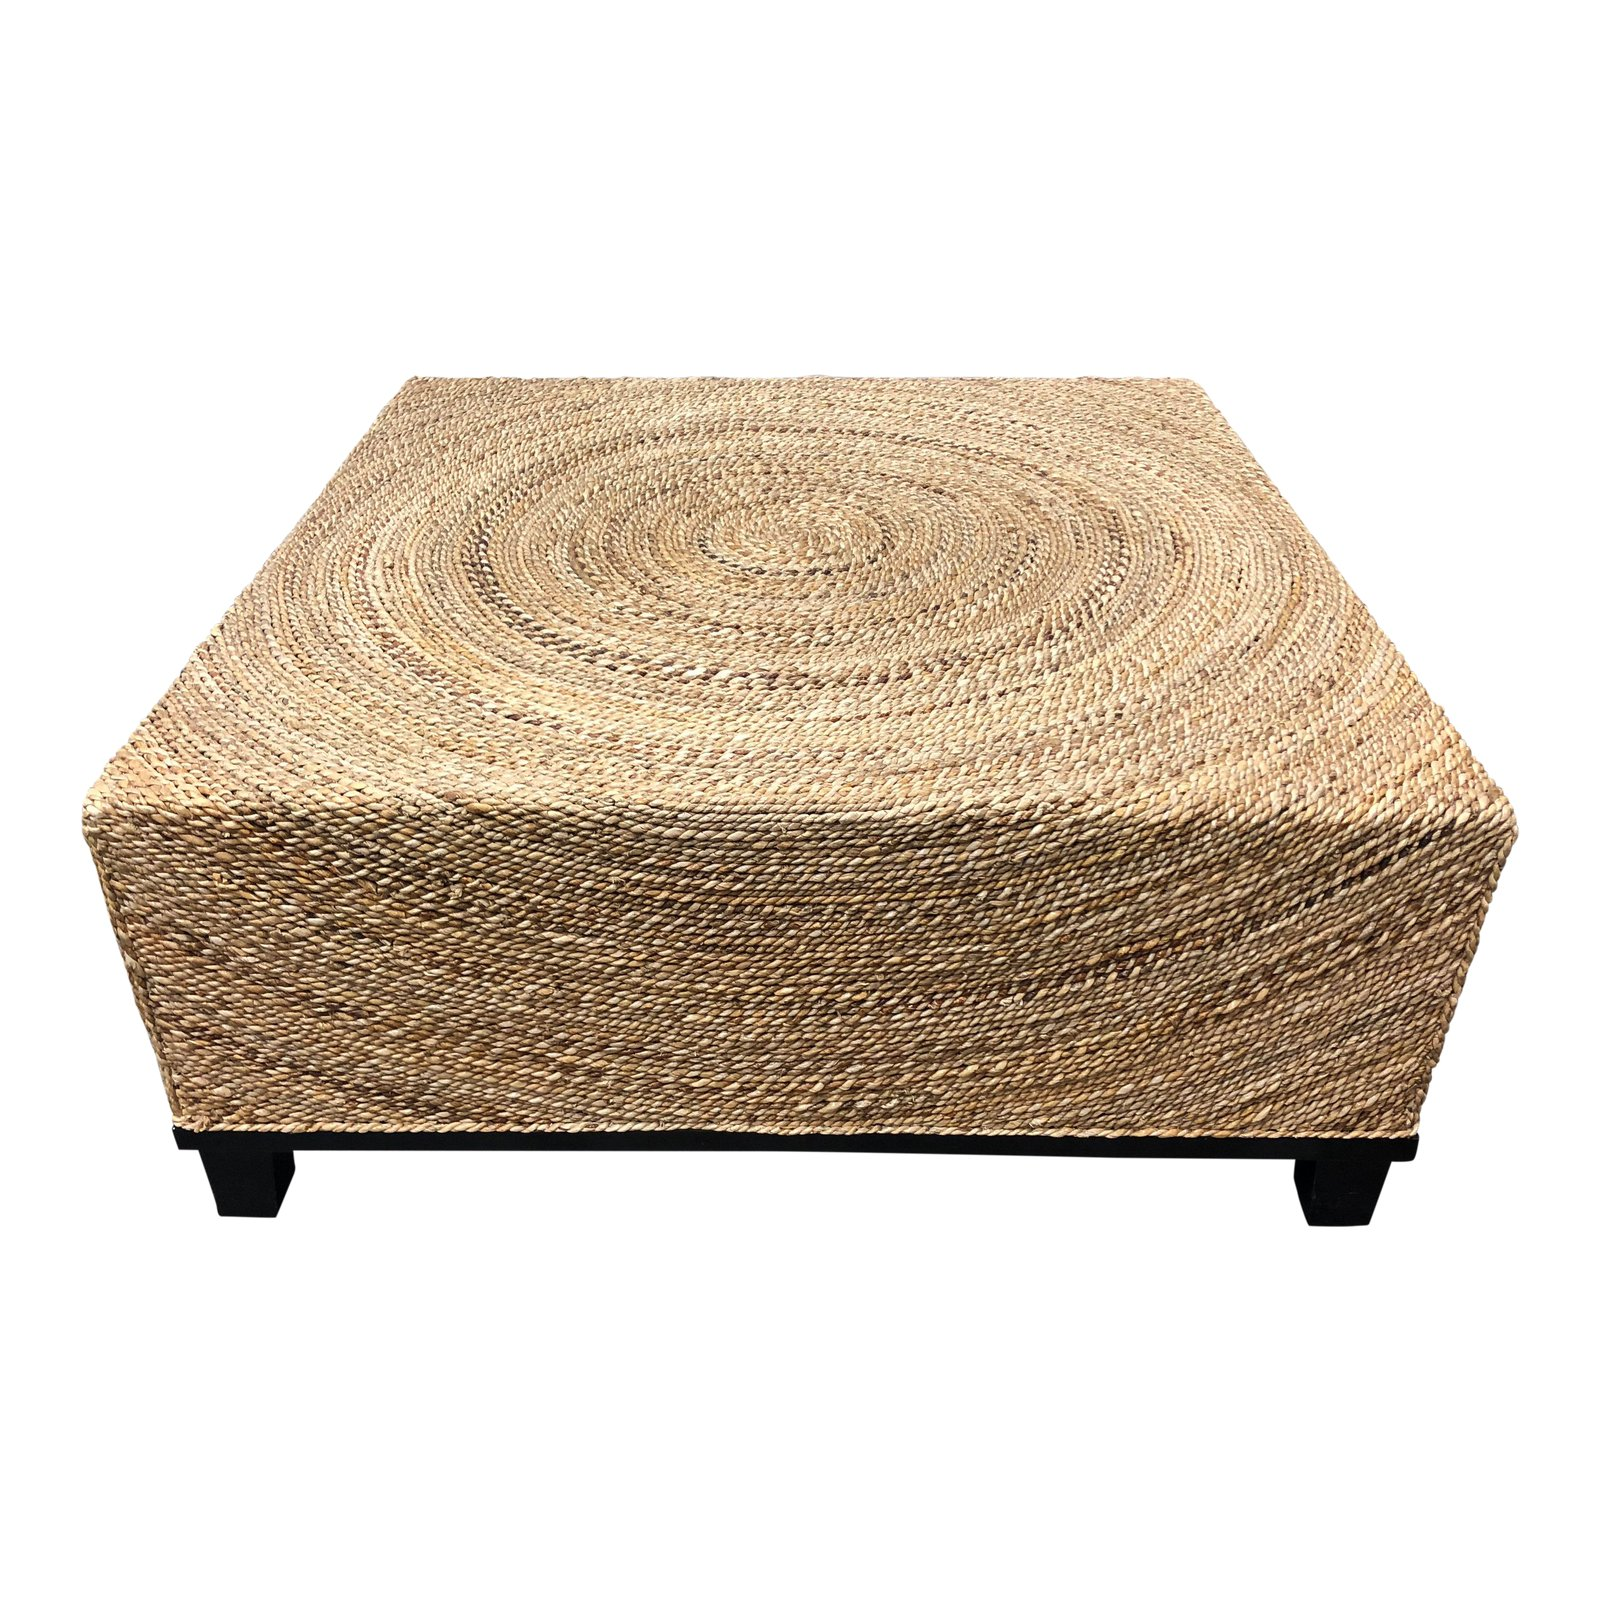 Z-Gallerie Concetric Coffee Table   Design Plus Gallery